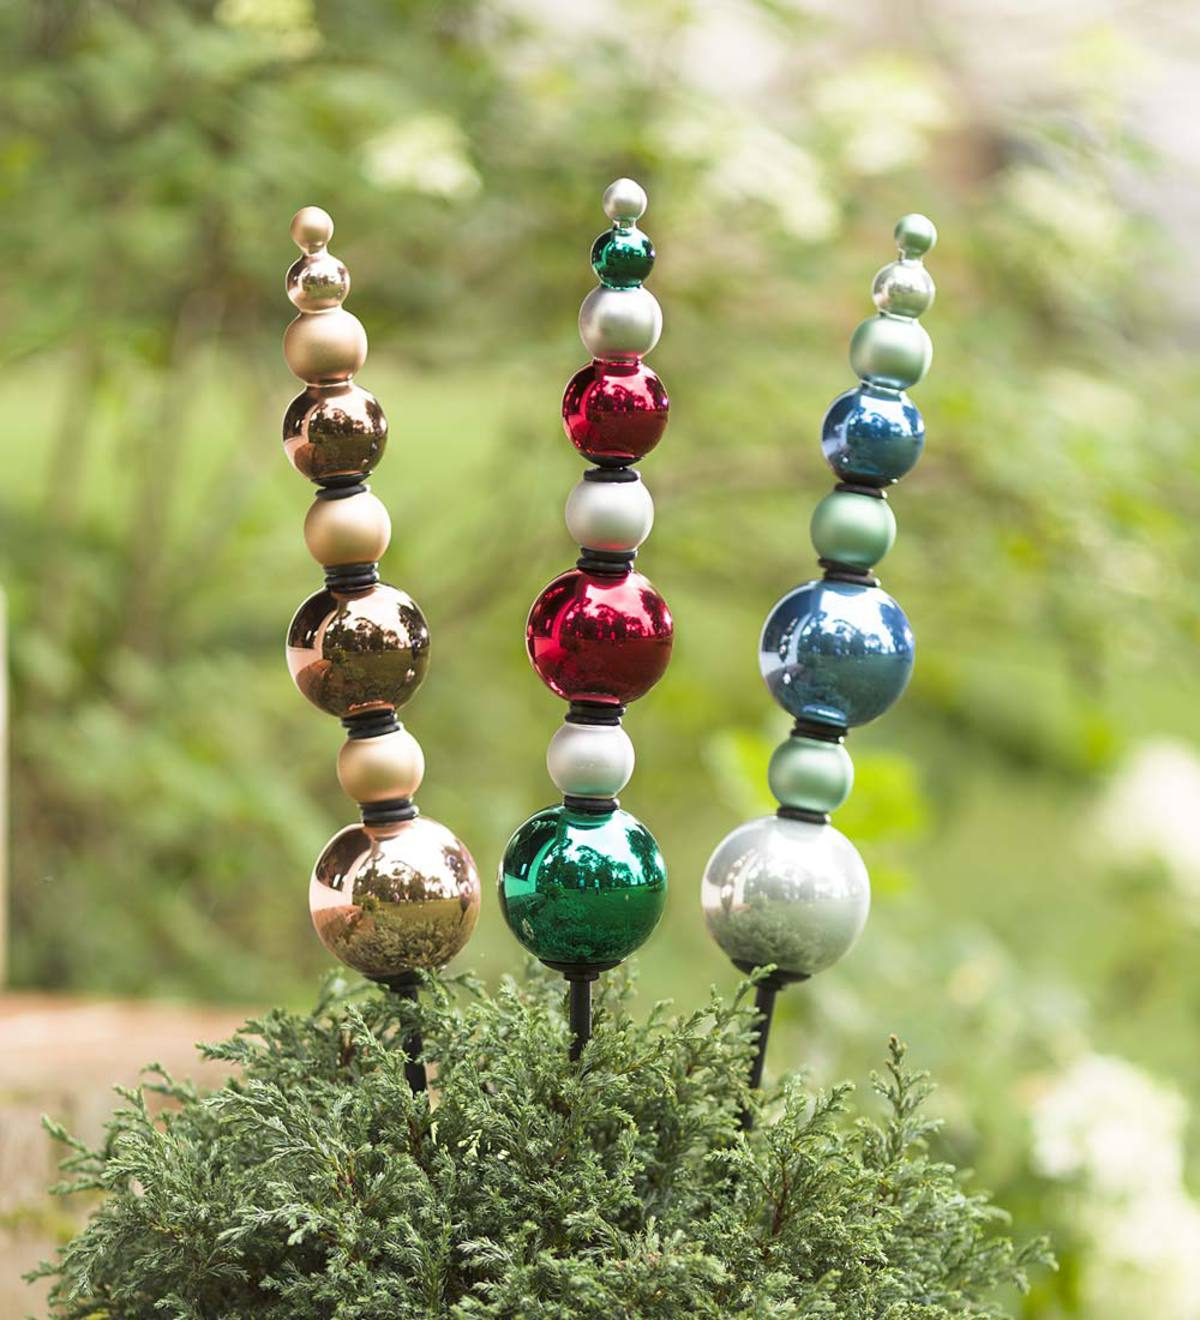 2 in 1 Outdoor Garden Glass Finial Ornaments, Set of 2